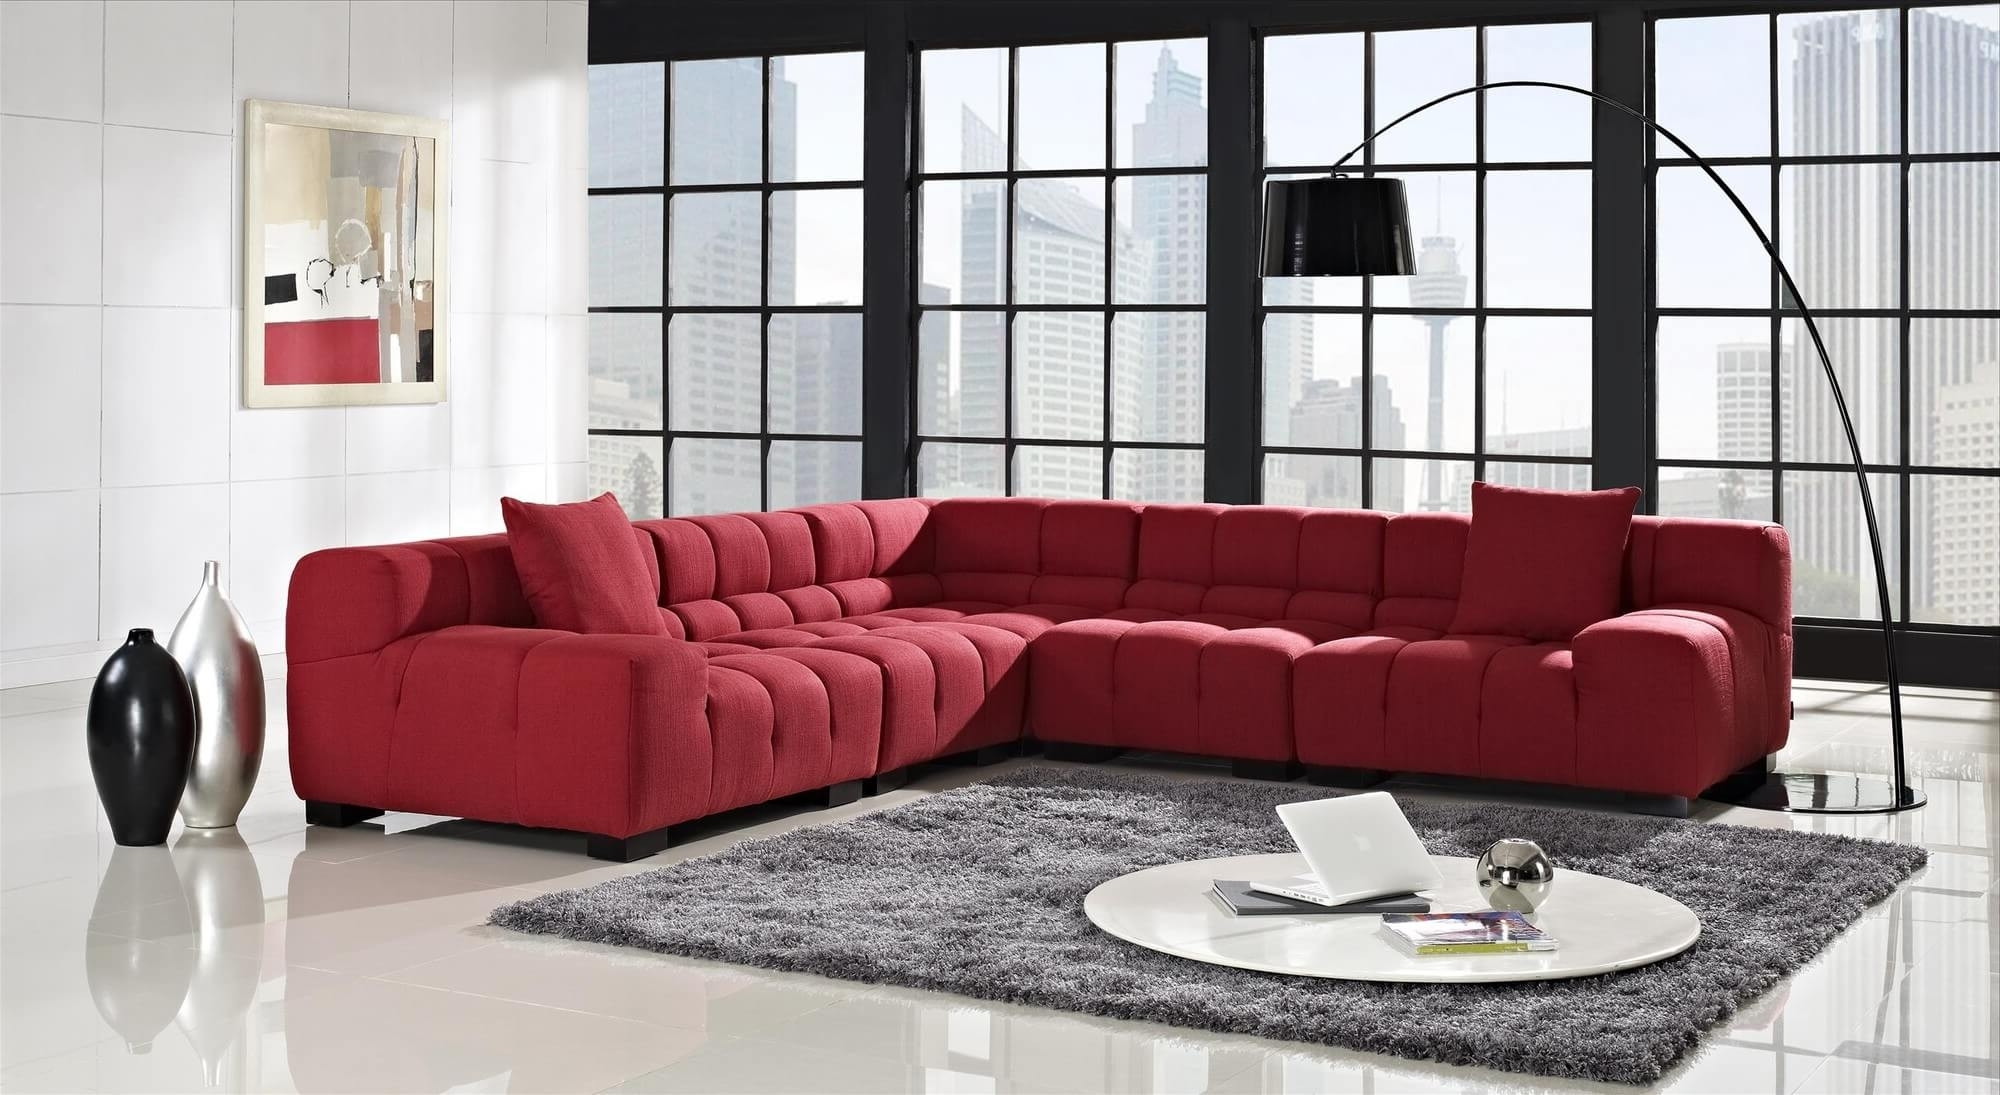 Tufted Sectional Sofas In Current 18 Stylish Modern Red Sectional Sofas (View 10 of 20)